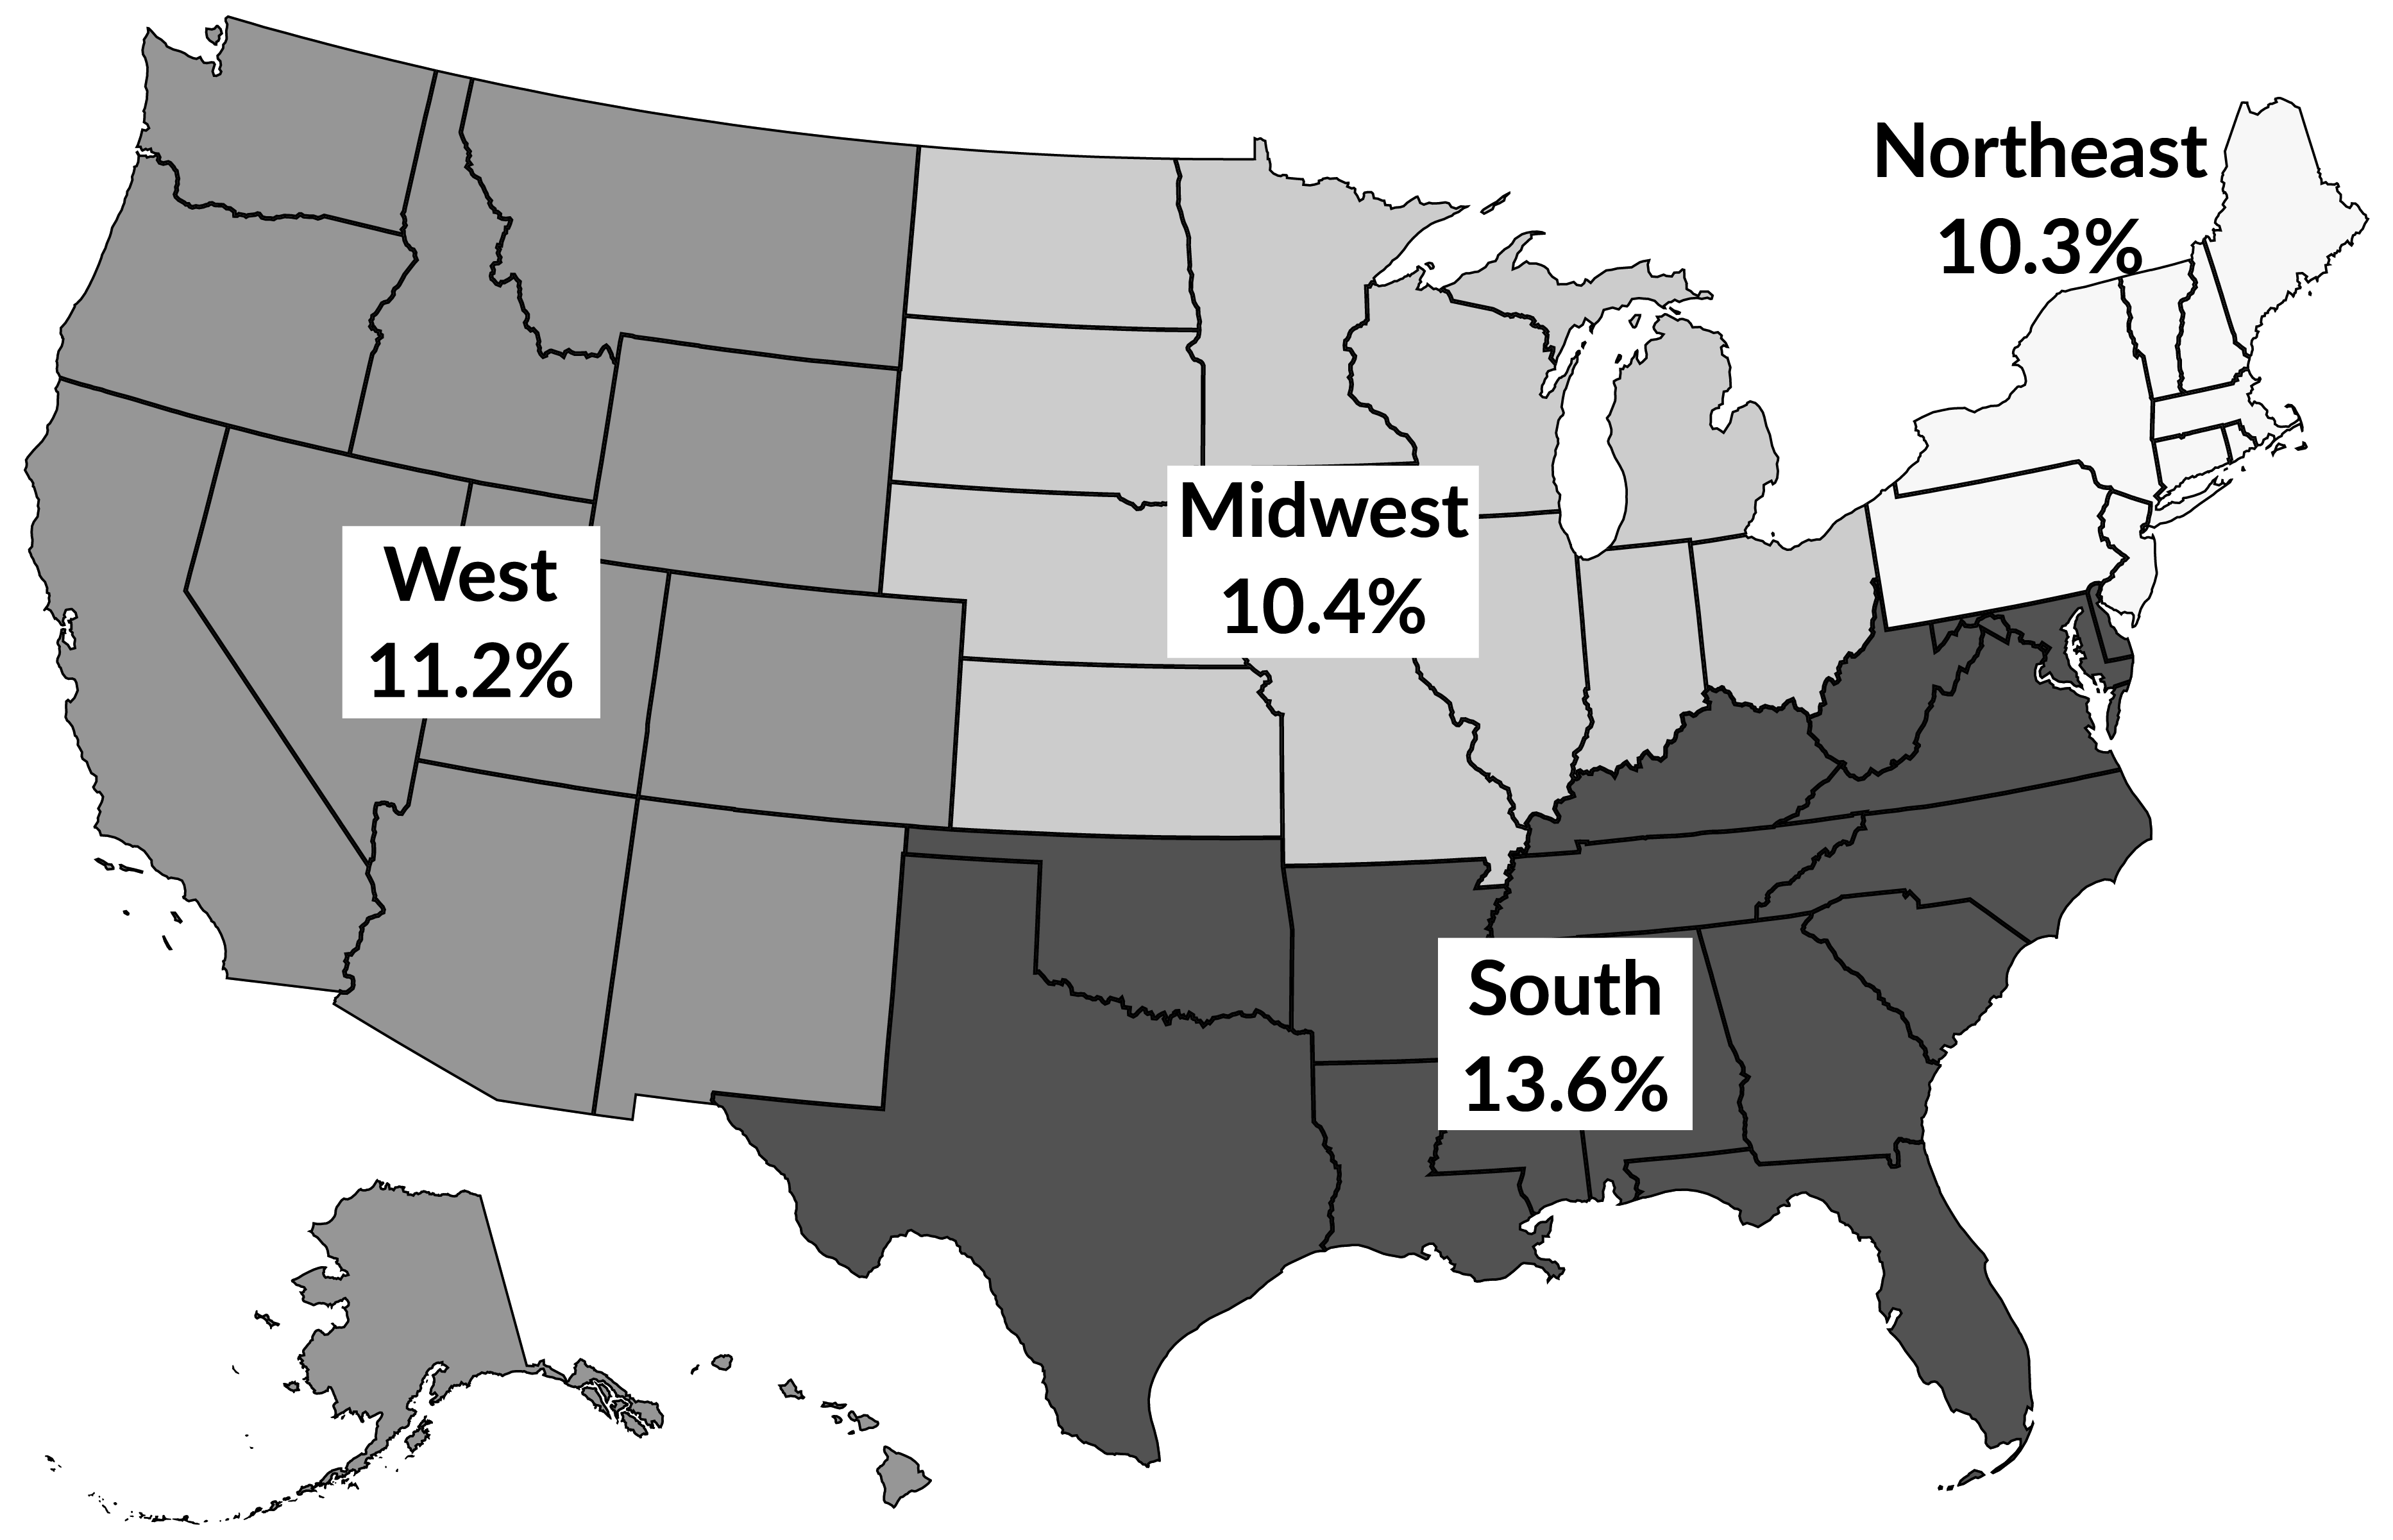 Figure 6. Poverty rates in the South were higher than the rest of the United States in 2018. Source: U.S. Census Bureau, Income and Poverty in the United States: 2018. Table B-1, p. 50